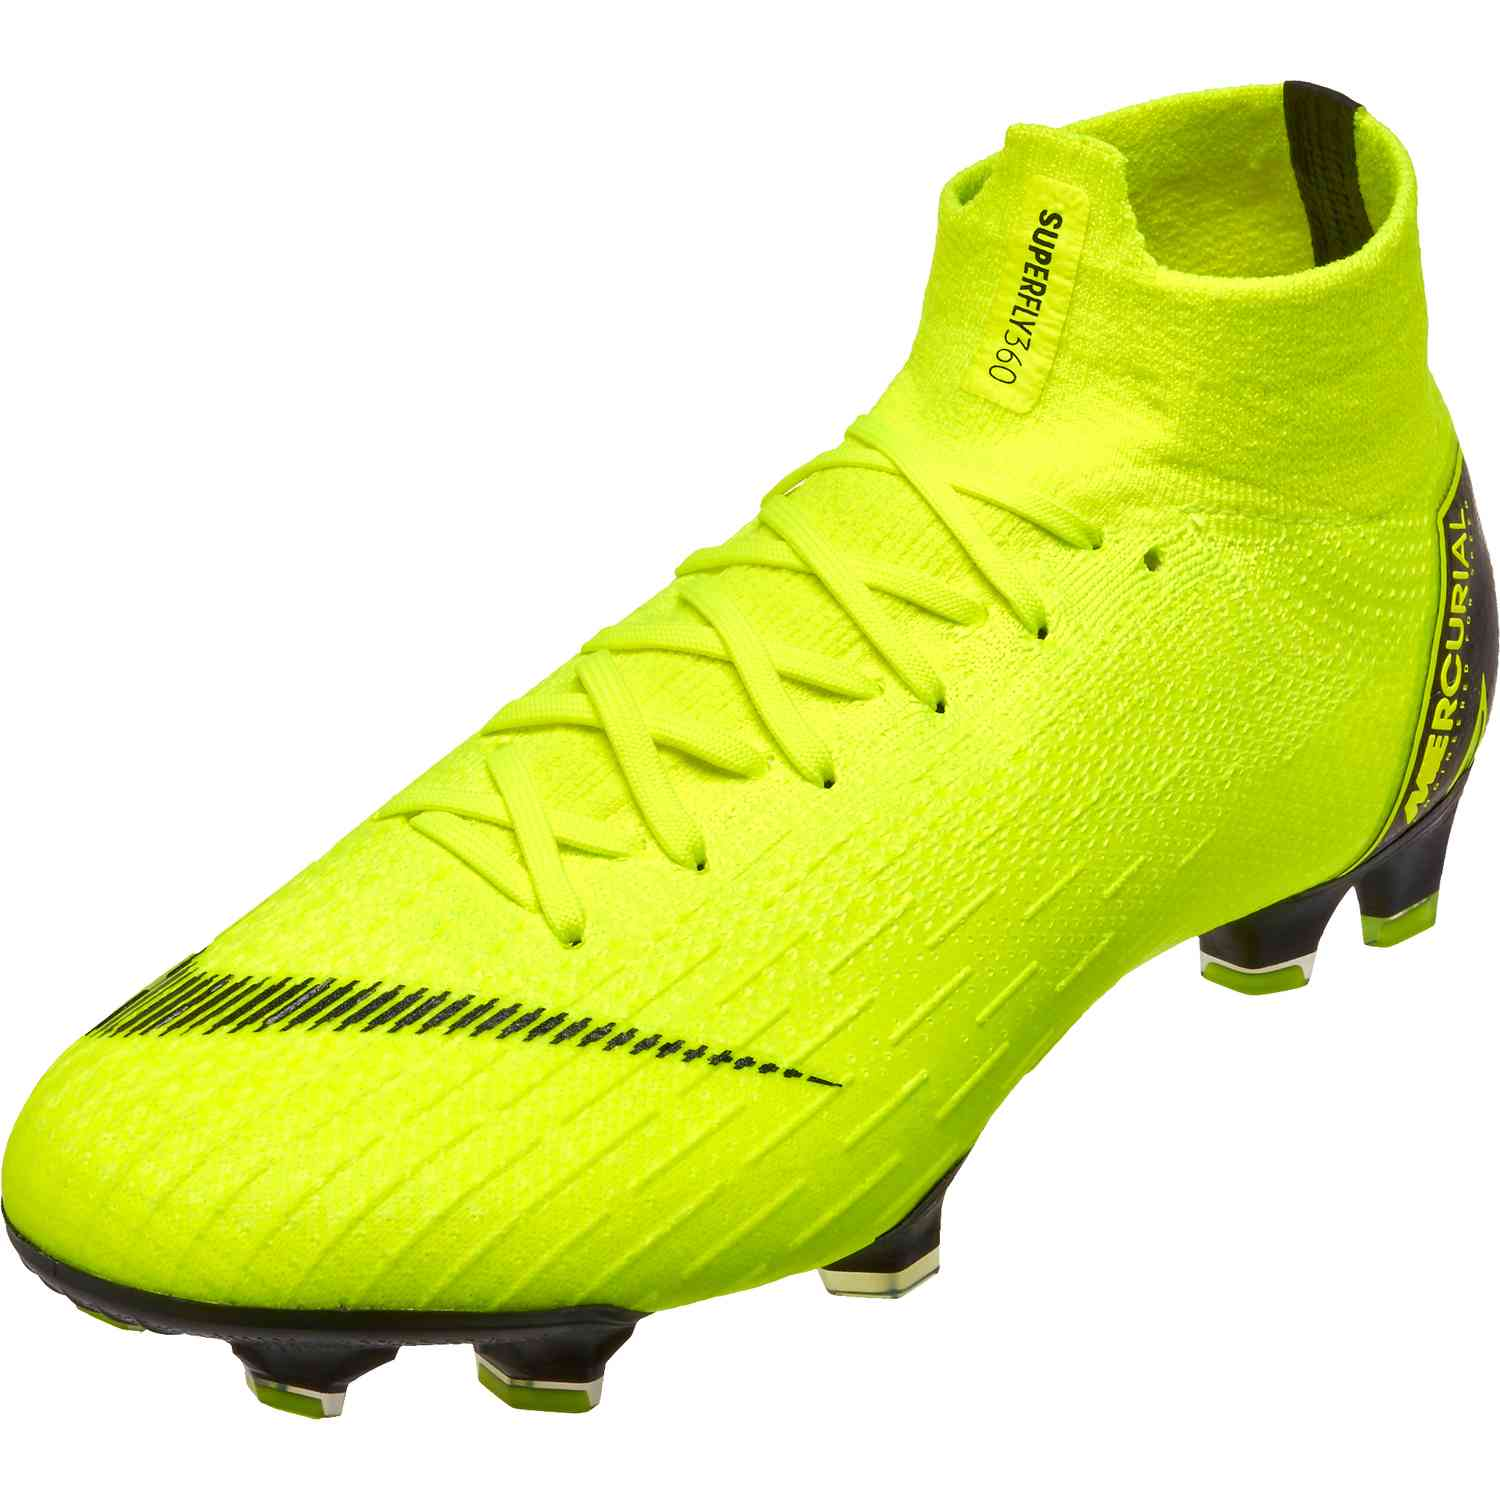 f11a80140 Nike Mercurial Superfly 6 Elite - New Wave Pack 1 - SoccerPro